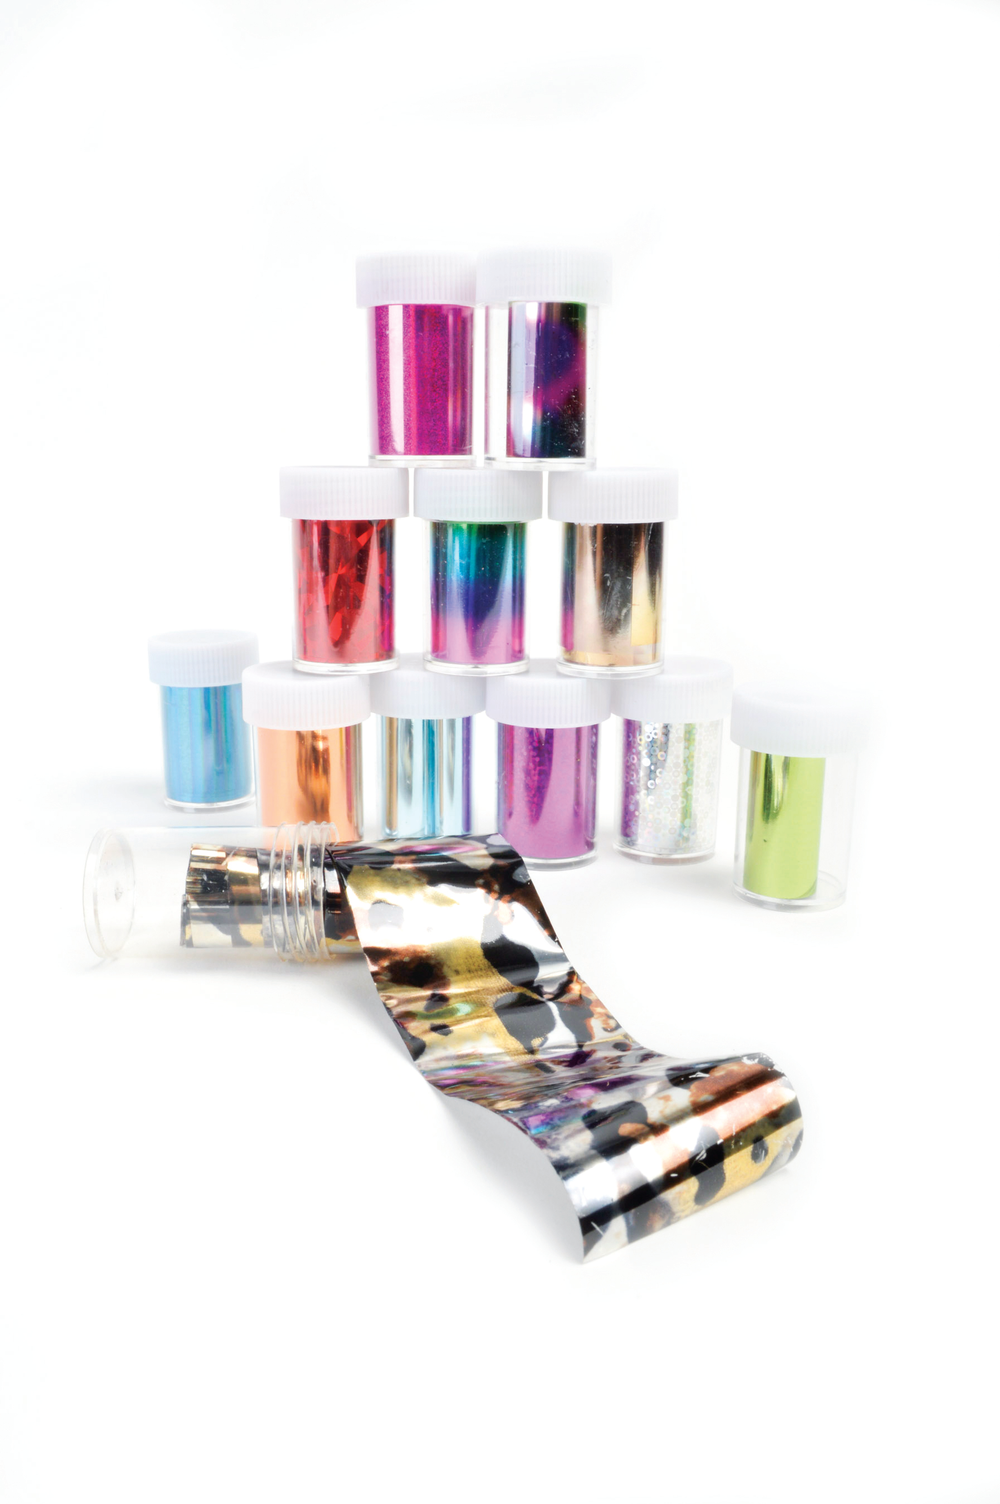 "<p>Mia Secret Foil Paper is available in three types of 12-piece assorted sets. <a href=""http://www.miasecretnails.com"">www.miasecretnails.com</a></p>"